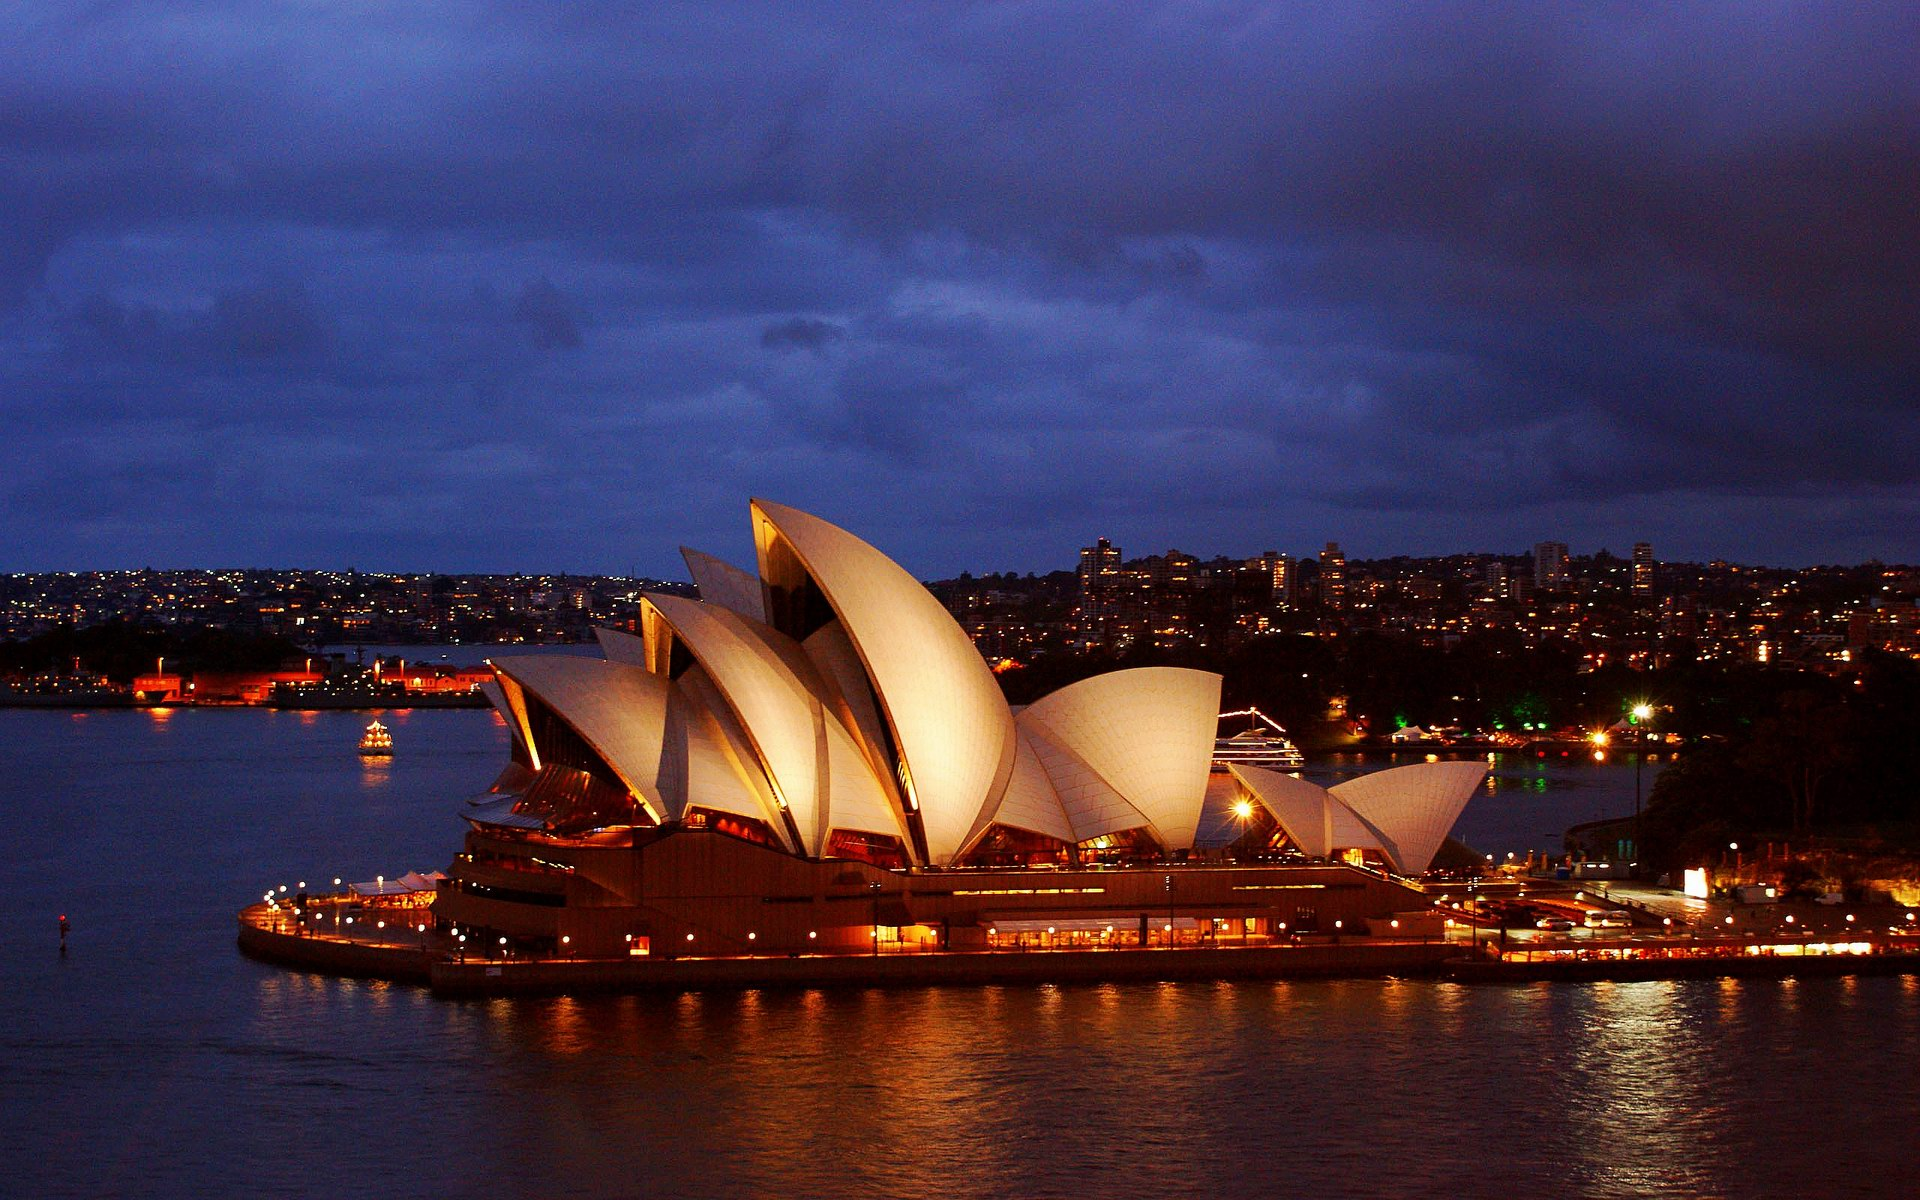 Sydney Opera House High Quality Wallpaper   HD Wallpapers 1920x1200